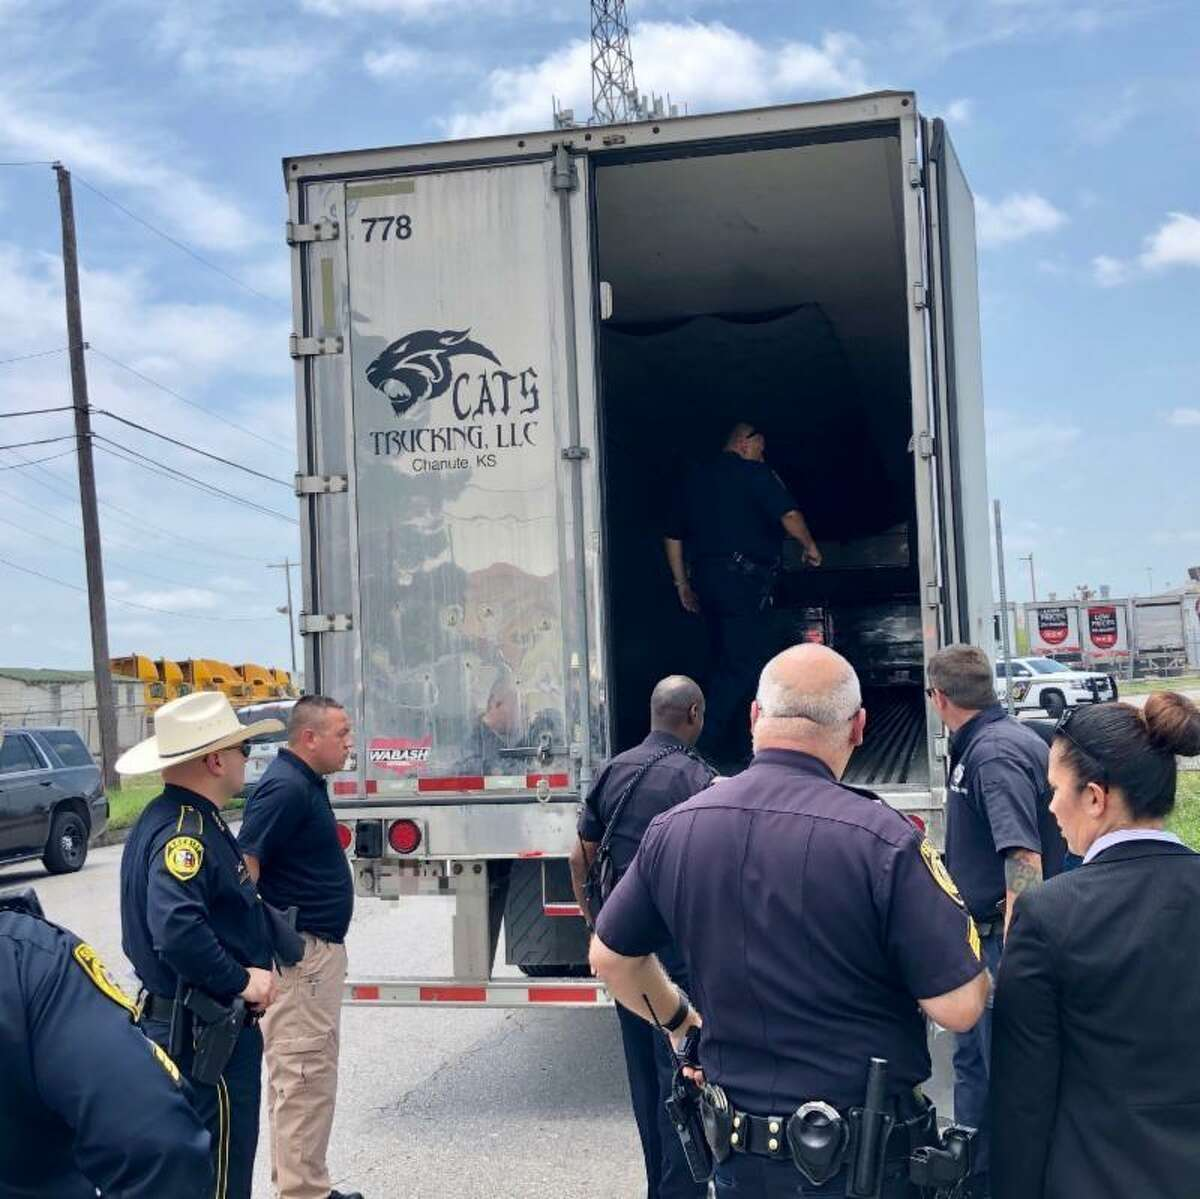 While on patrol Monday, a Bexar County Sheriff's deputy discovered 11 undocumented immigrants believed to be victims of a human trafficking ring.